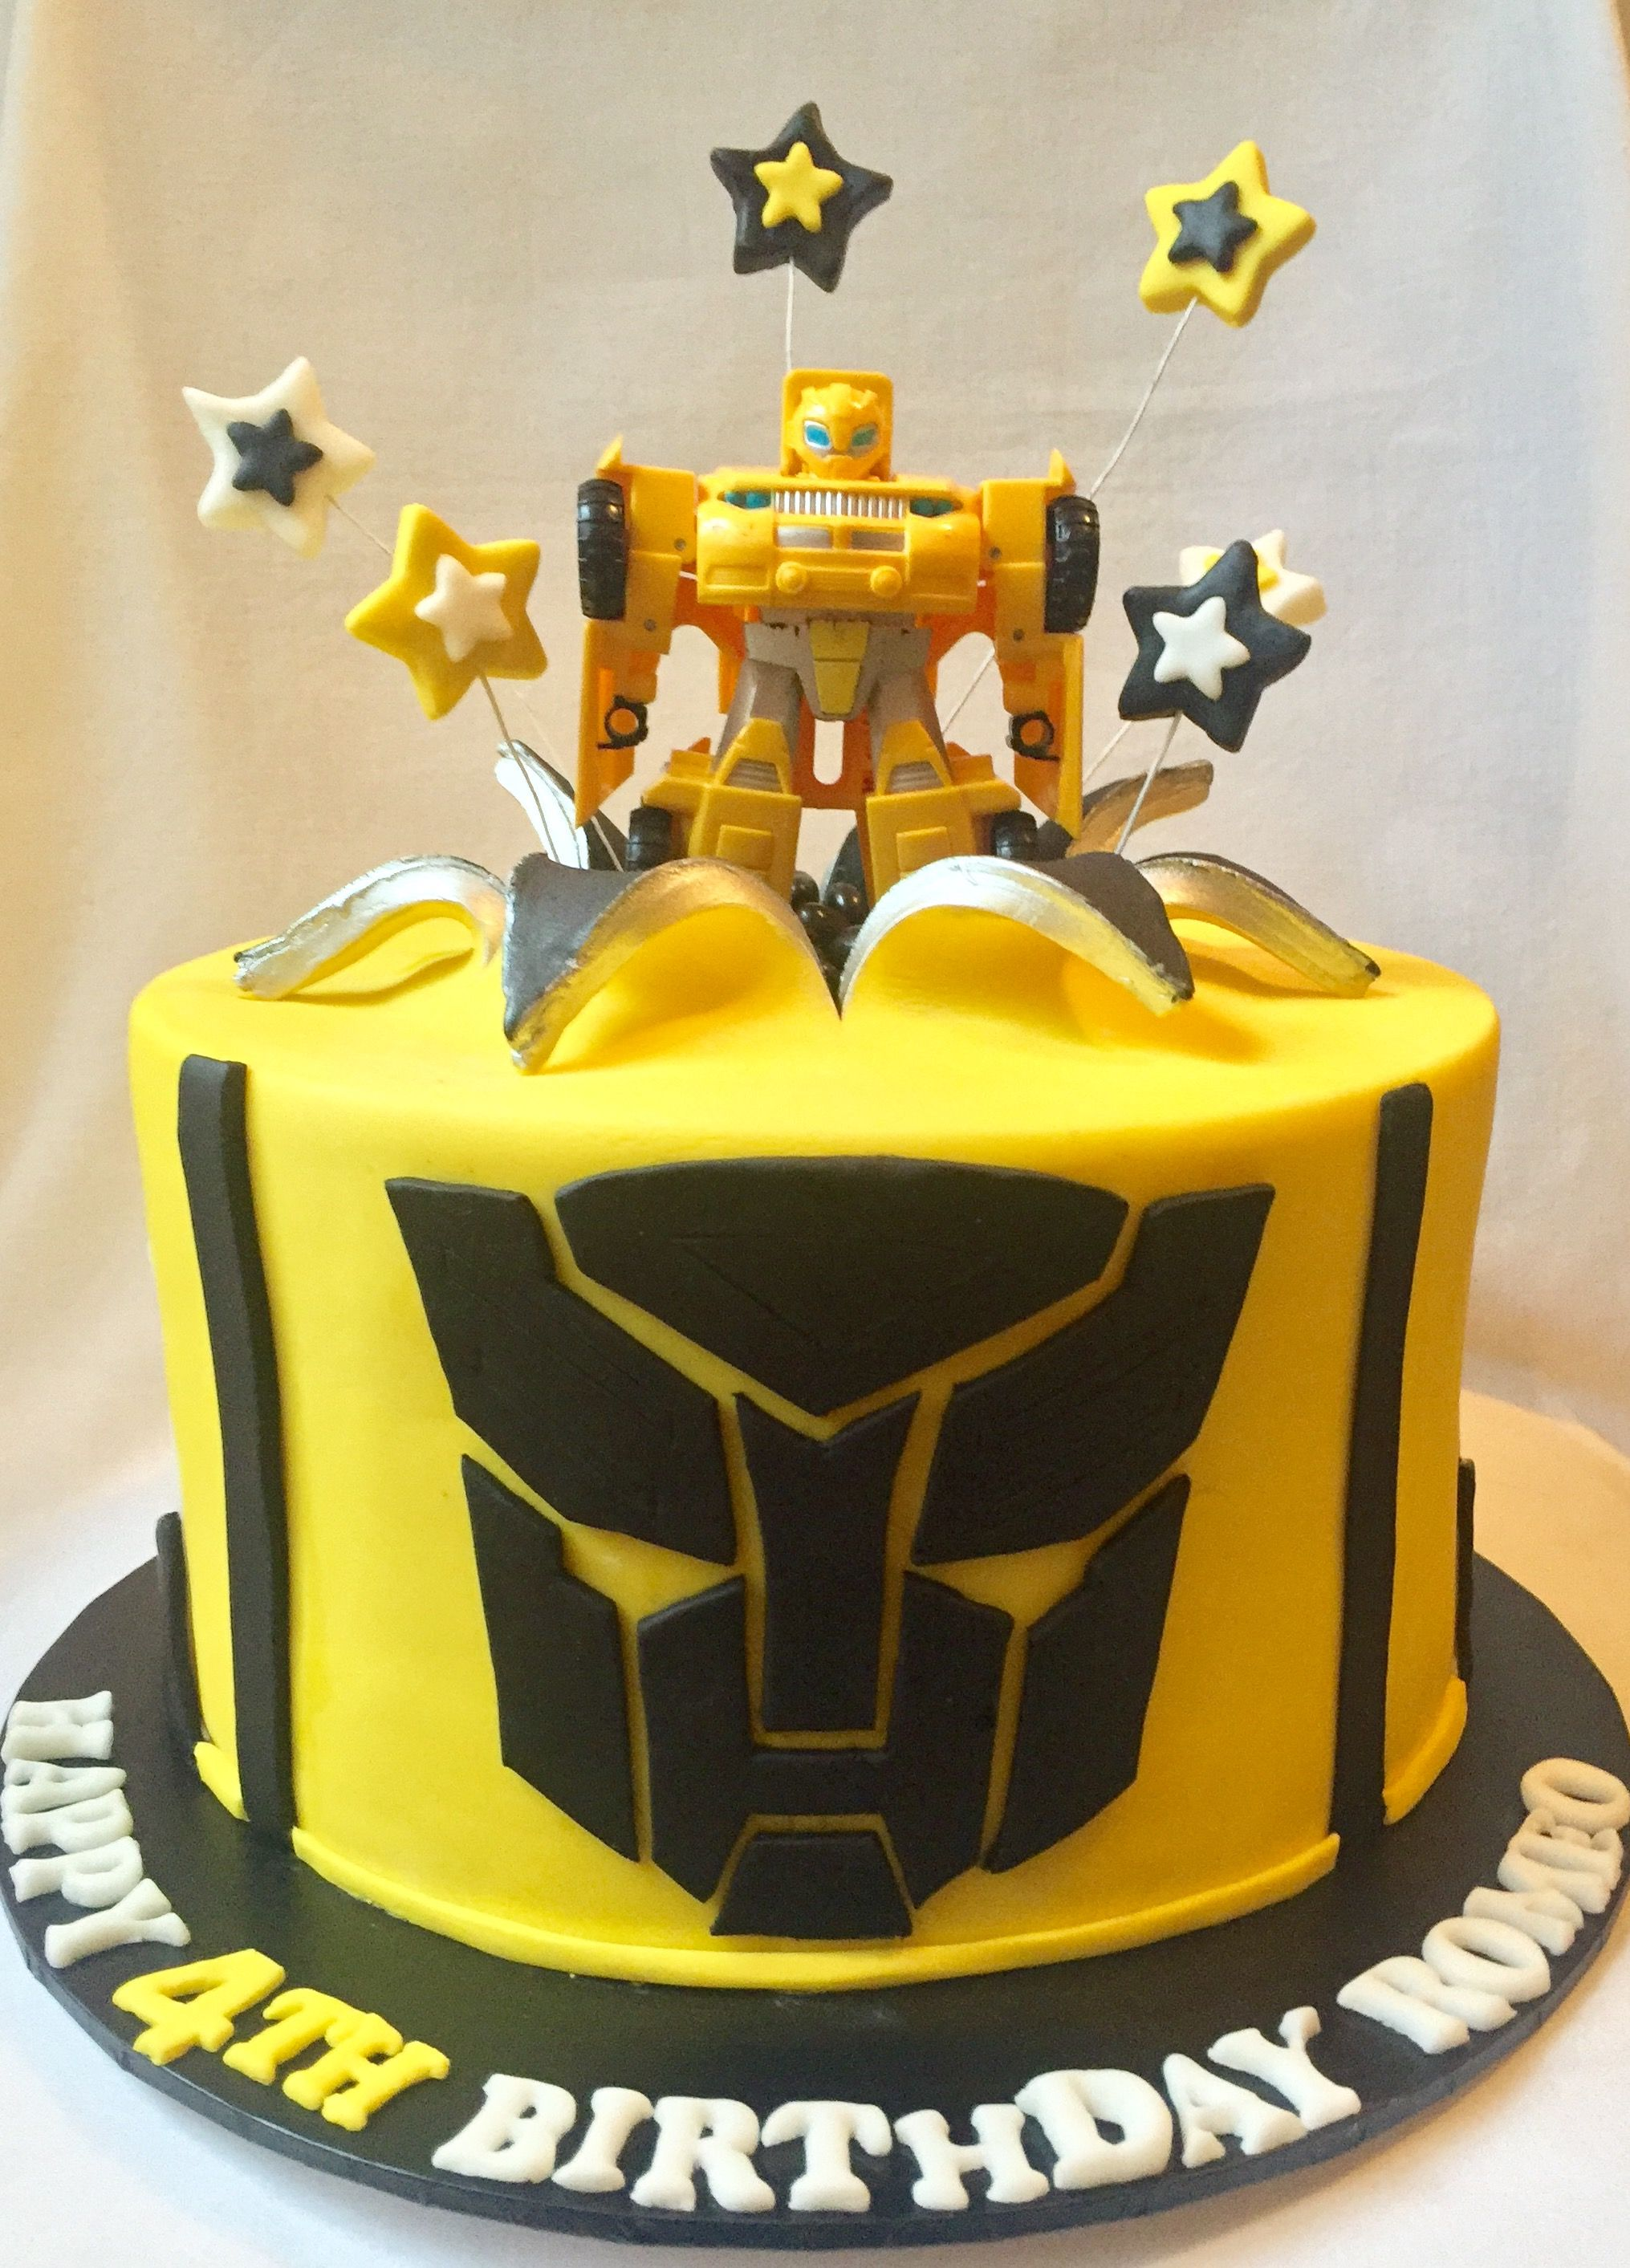 Bumble Bee Transformer Cake By Cupcakes For Your Cupcake